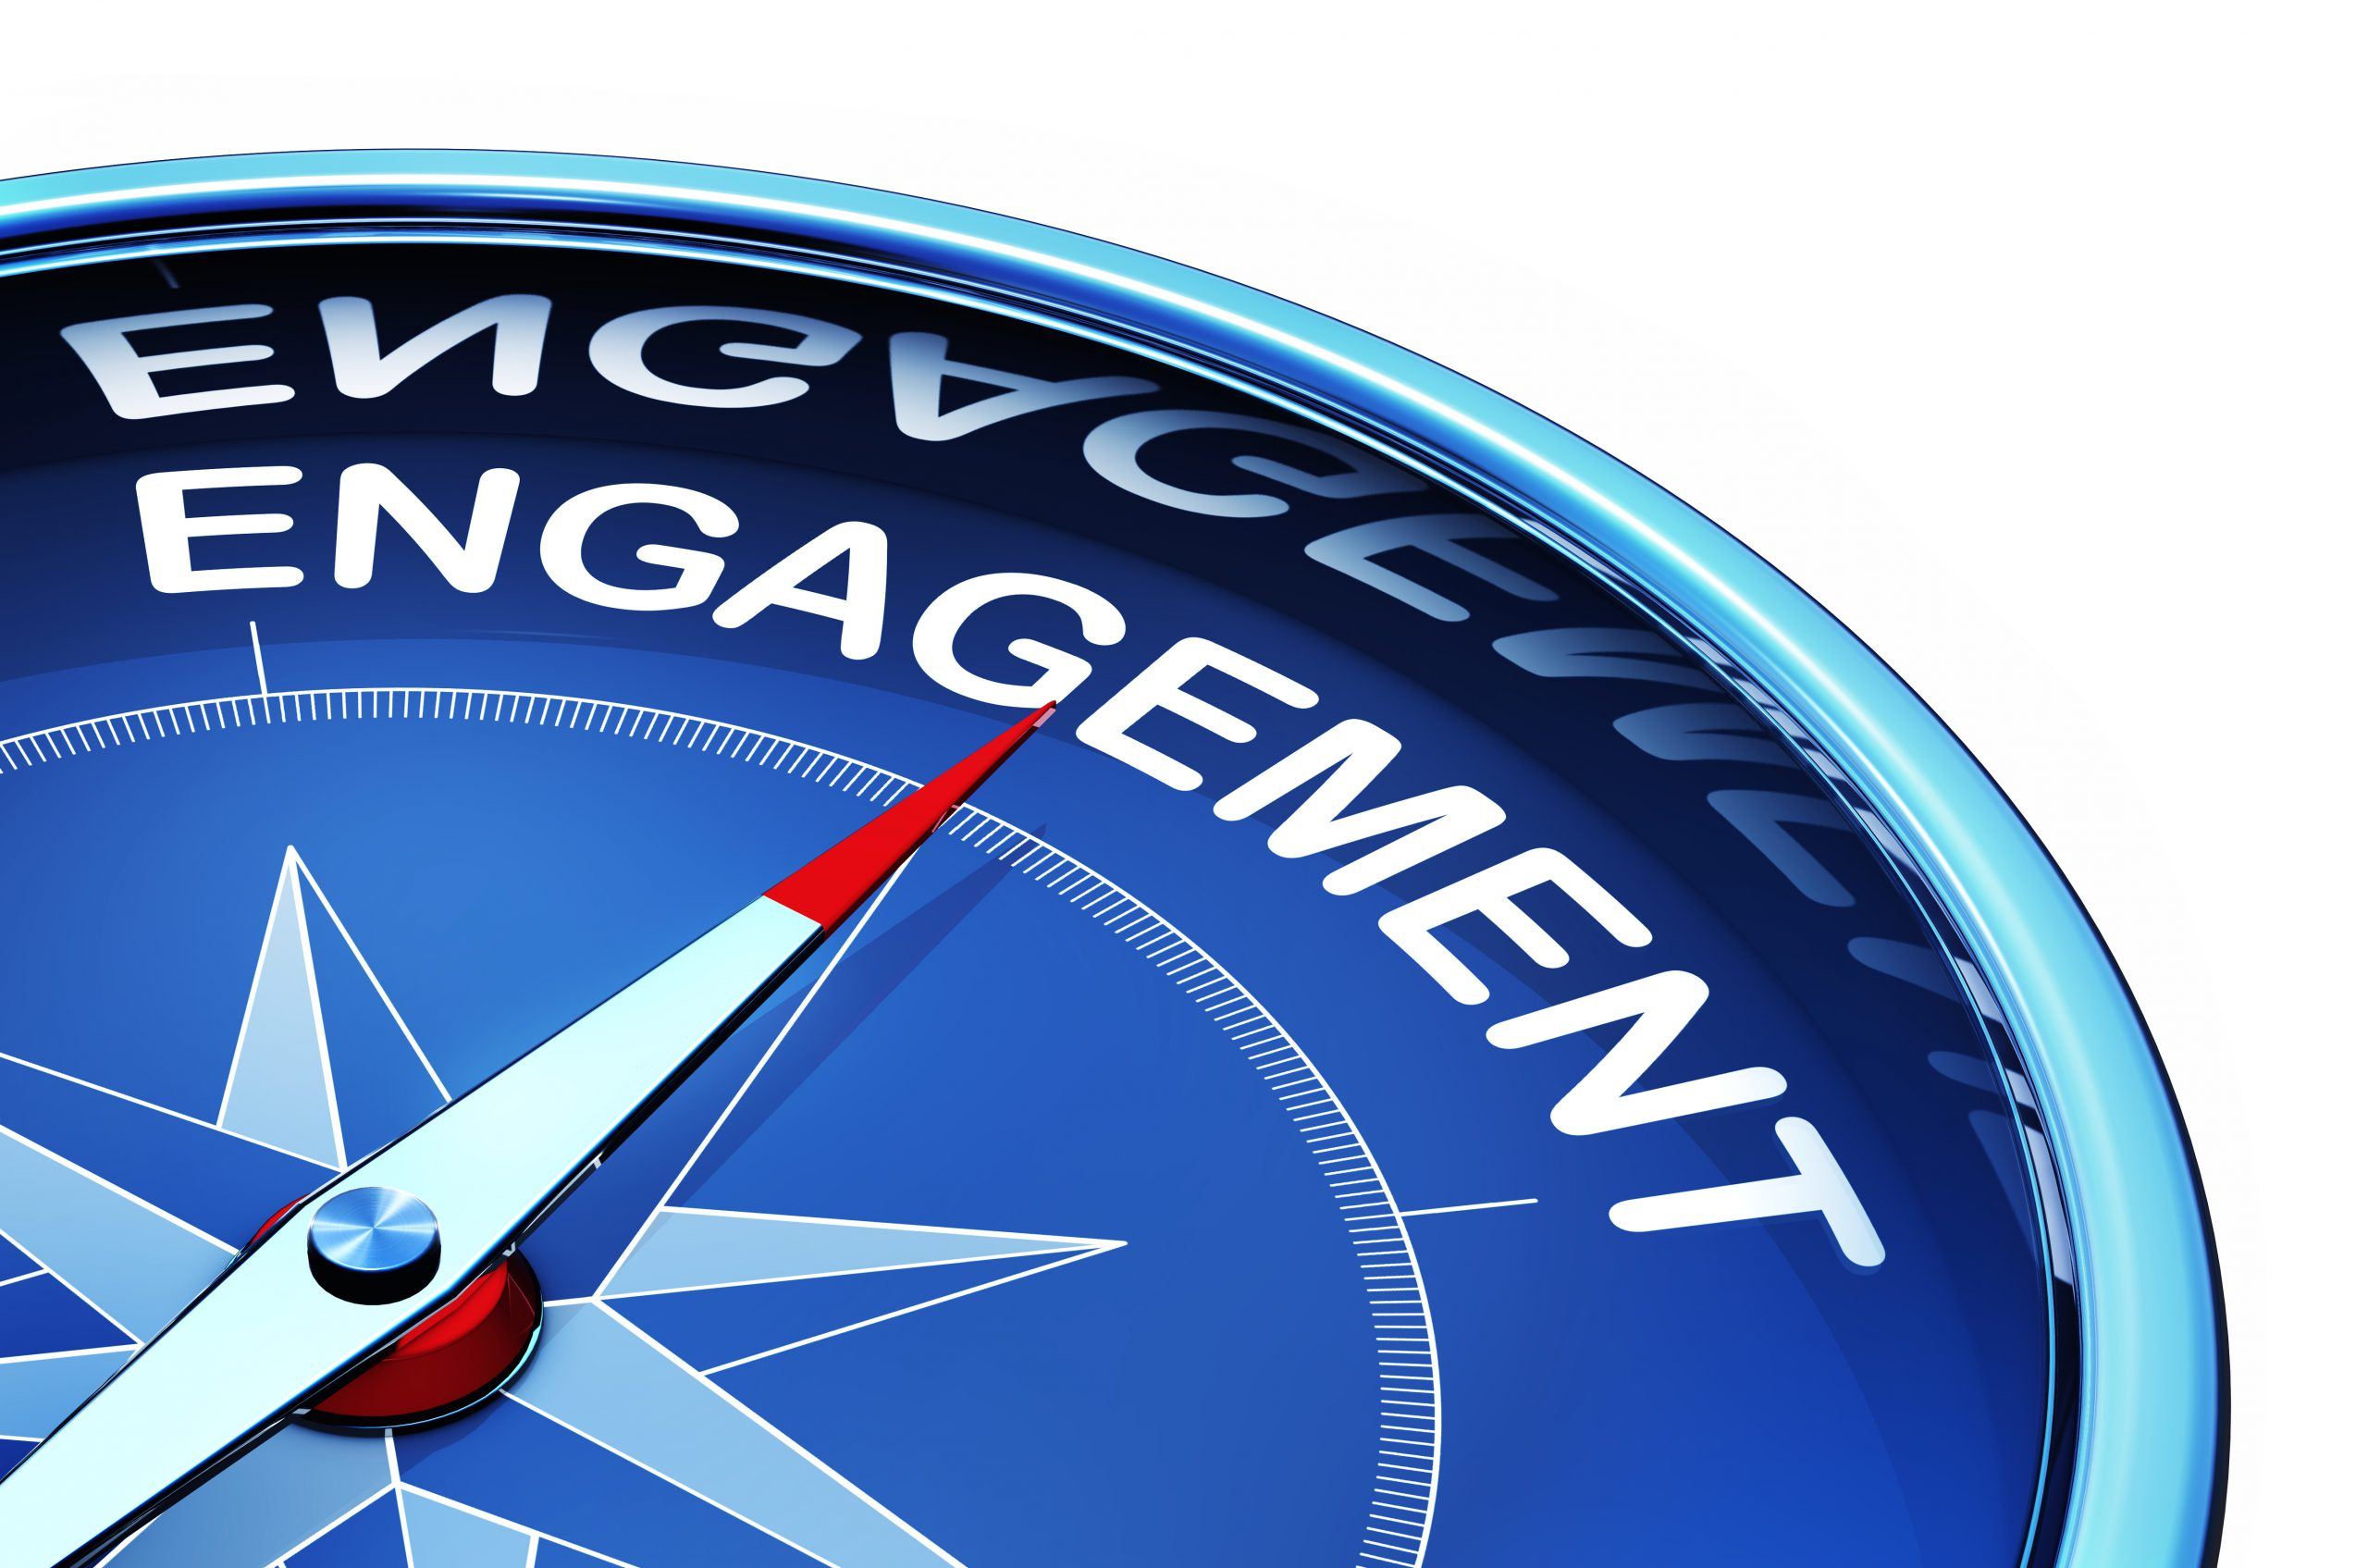 Employee Engagement Software for Organization Success